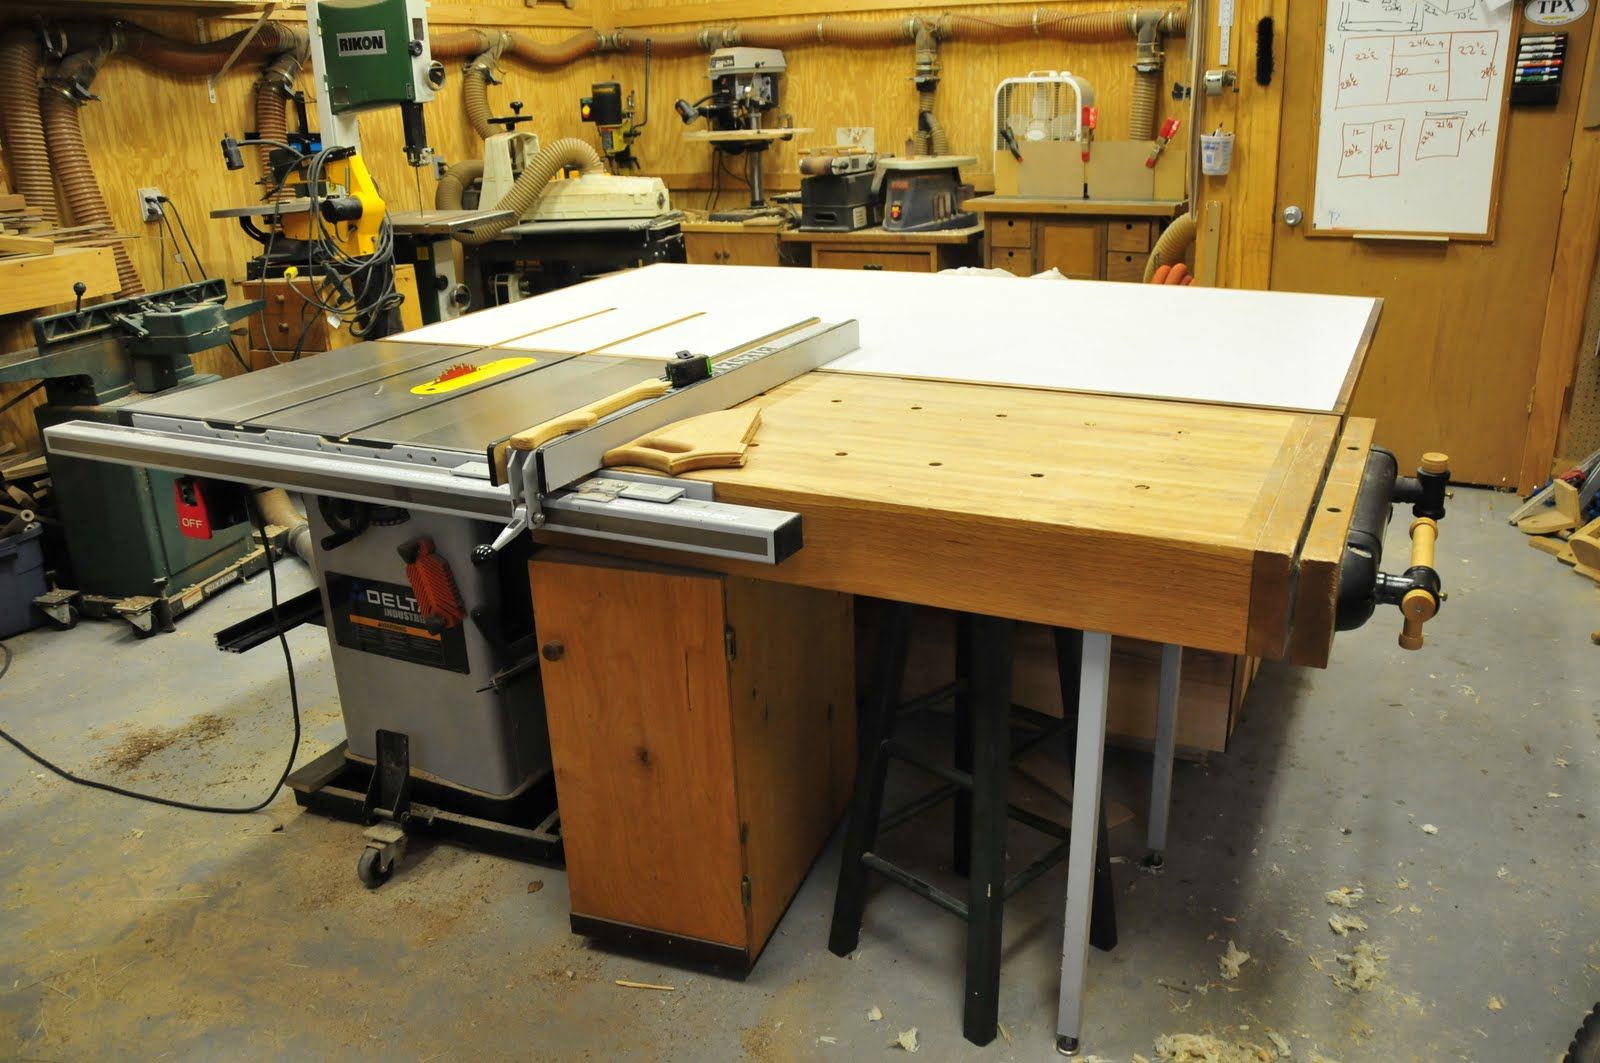 Treefrogfurniture A New Assembly Table Assembly Table Woodworking Table Saw Woodworking Plans